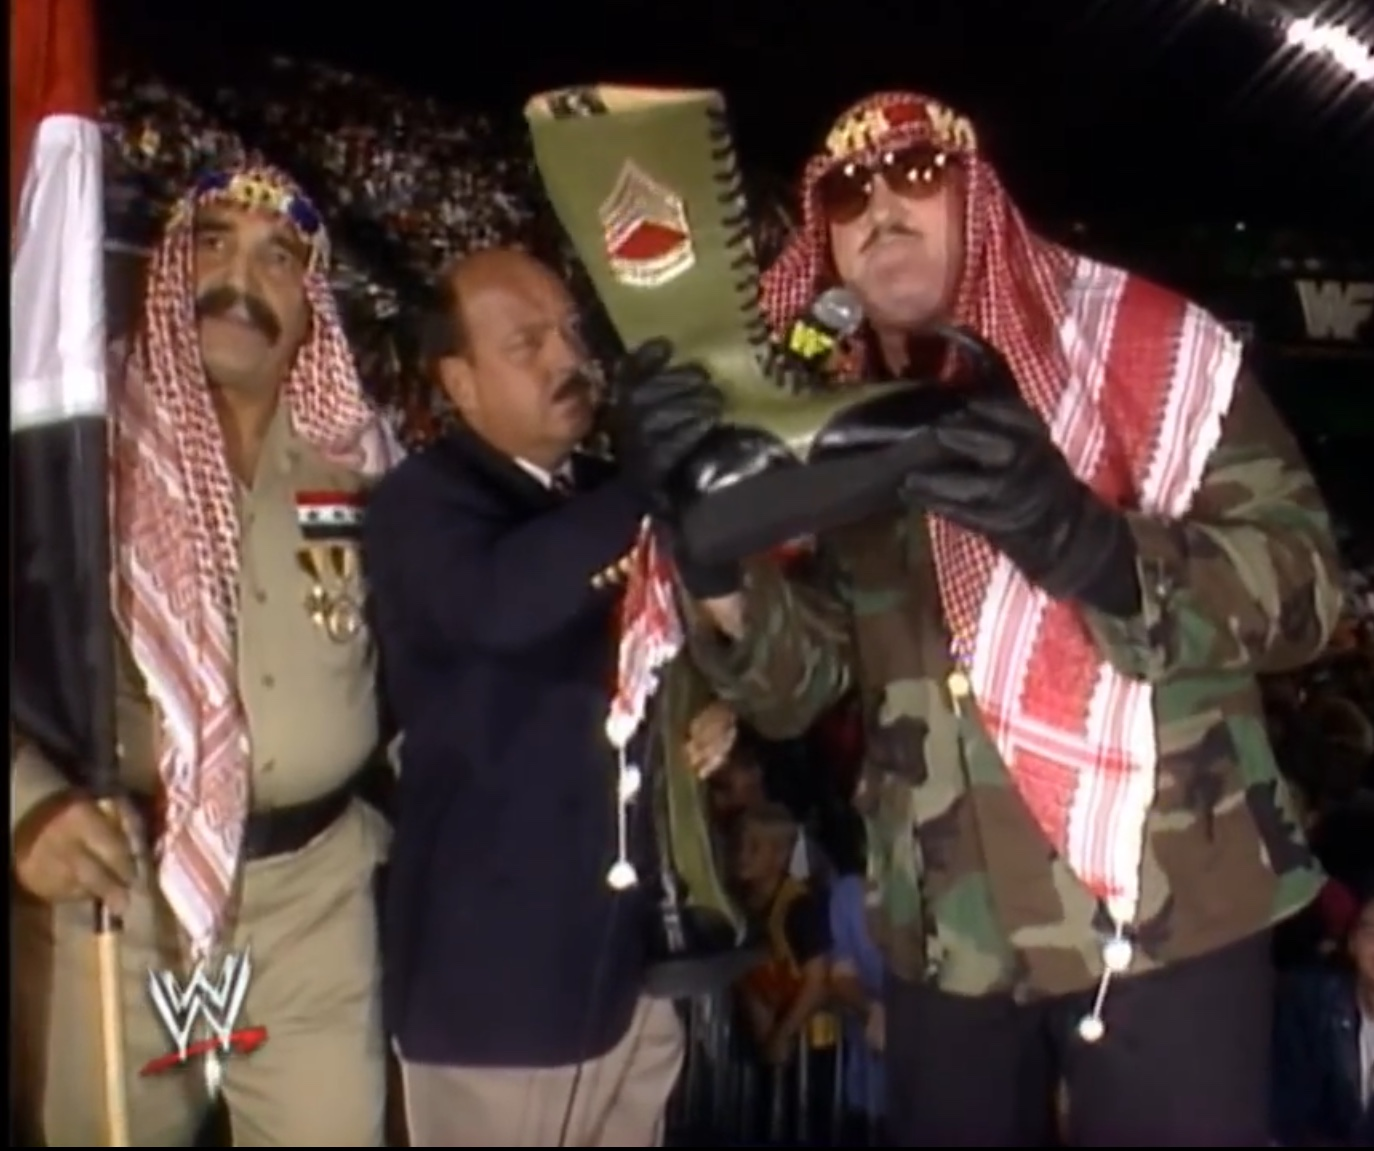 Just one example of Vince McMahon's great history of Middle East relations.